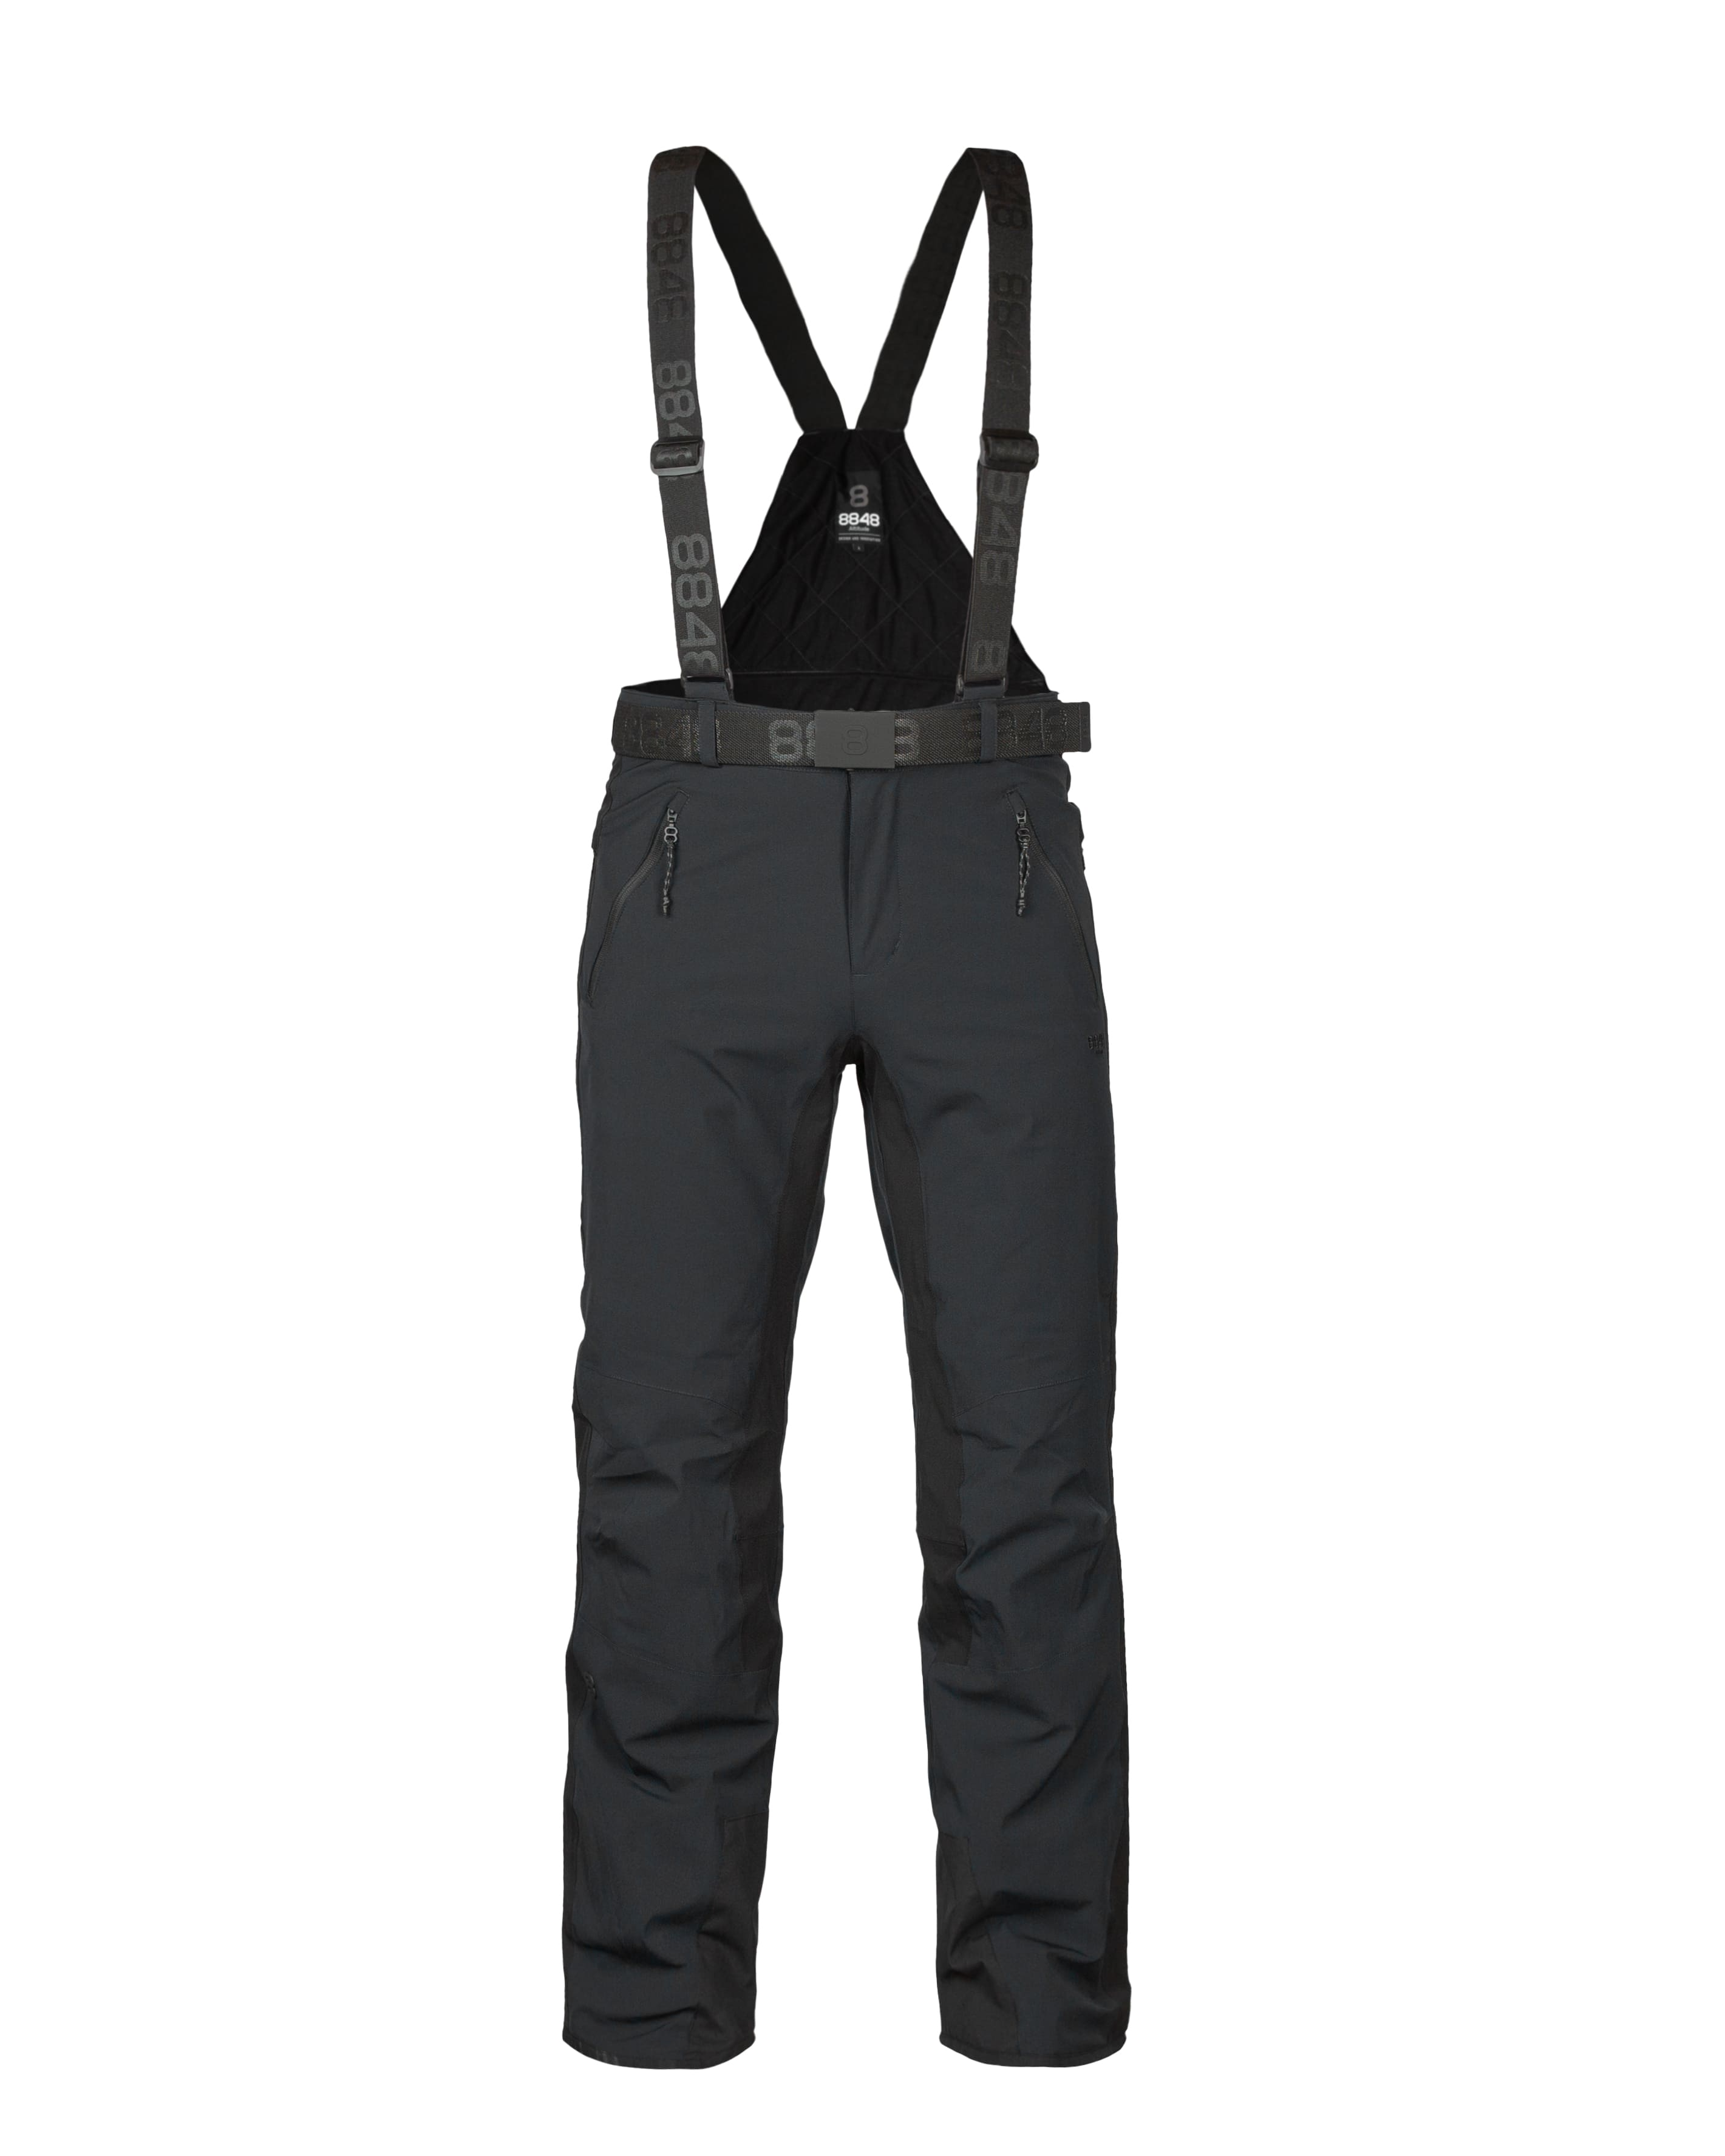 8848 Altitude M Rothorn 2.0 Pant